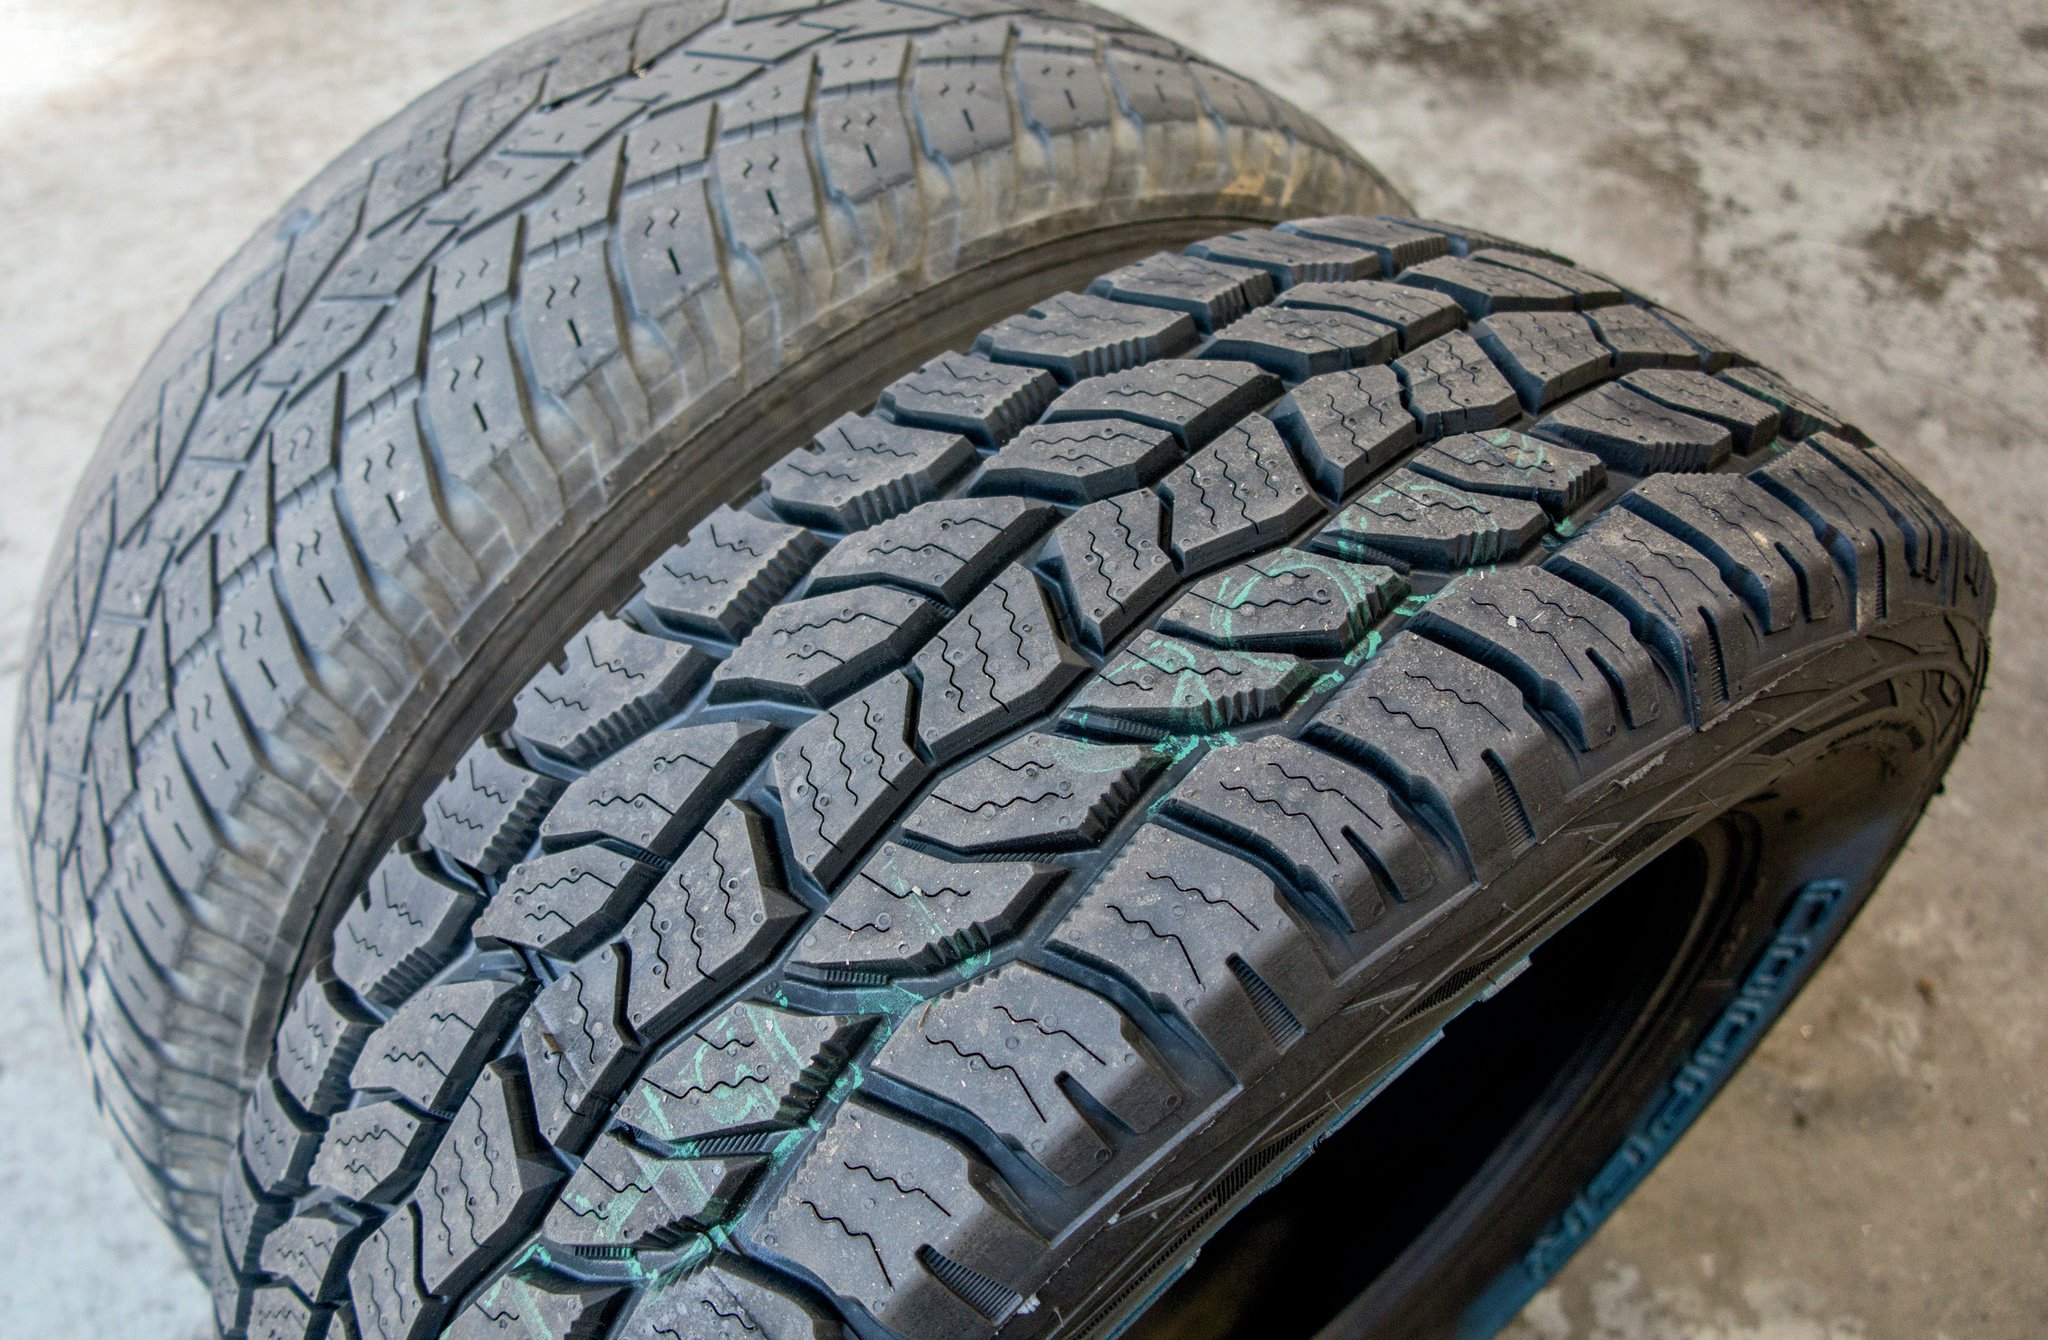 The silica-based tread compound and generous siping on the Cooper Discoverer A/T3 made them an easy choice for a vehicle that sees a lot of snow and ice in the winter. I got a set of A/T3s in the stock 235/65R17 size, and they came with a 50,000-mile treadwear warranty, so we won't need to worry about tires again for years.